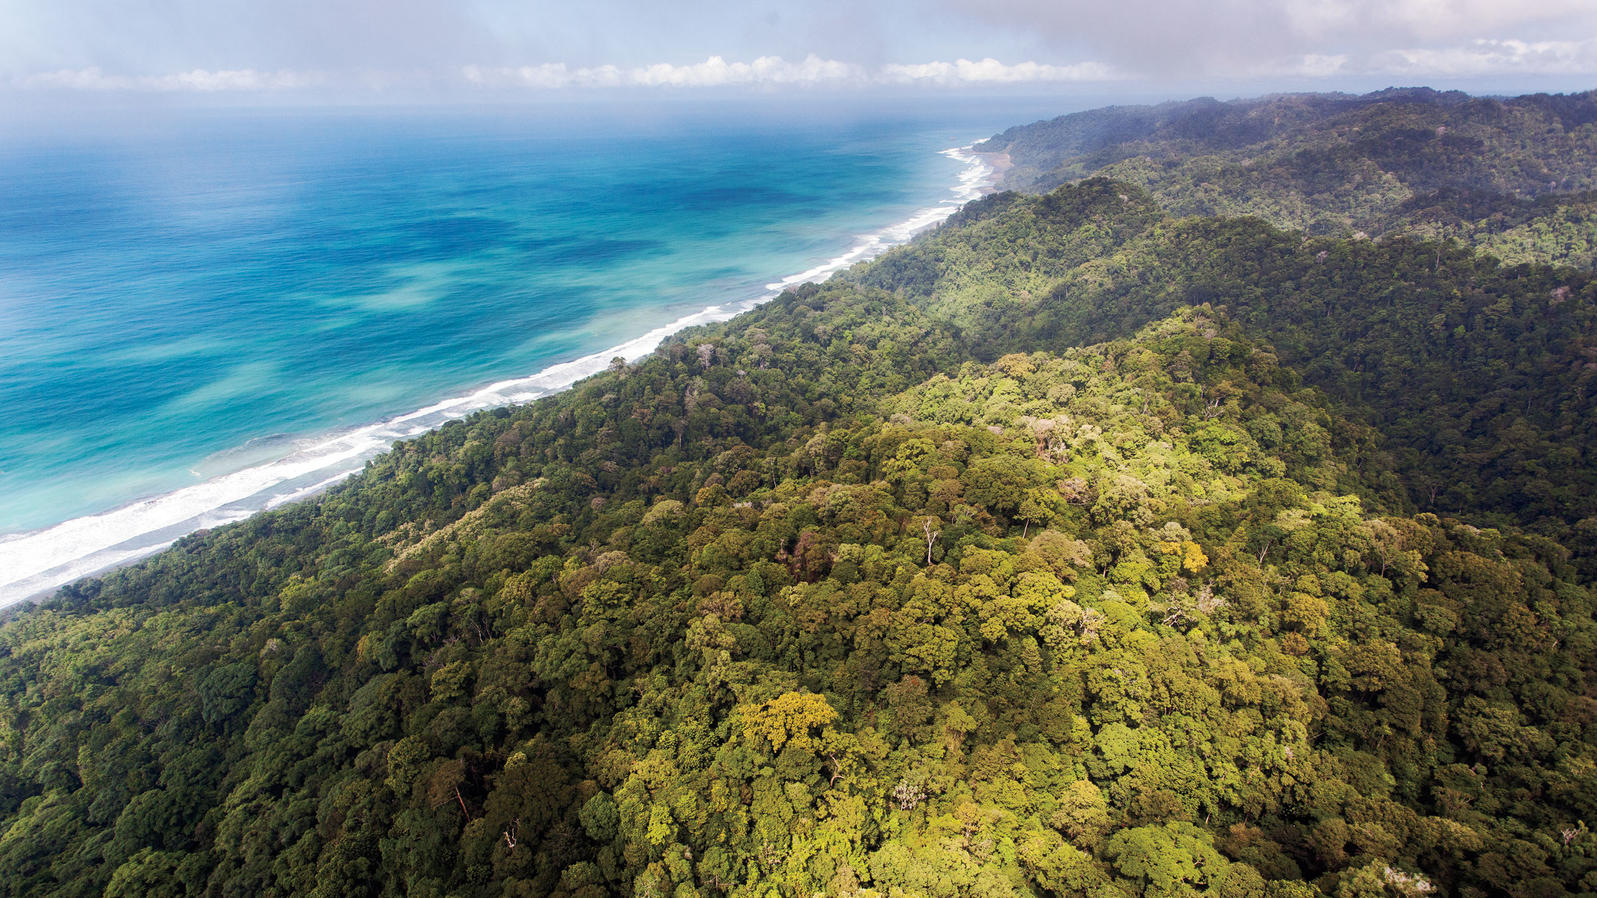 Photograph by Emmanuel Rondeau. The Corcovado National Park in Costa Rica, 425km2 of pristine rainforest. Photograph by Emmanuel Rondeau.